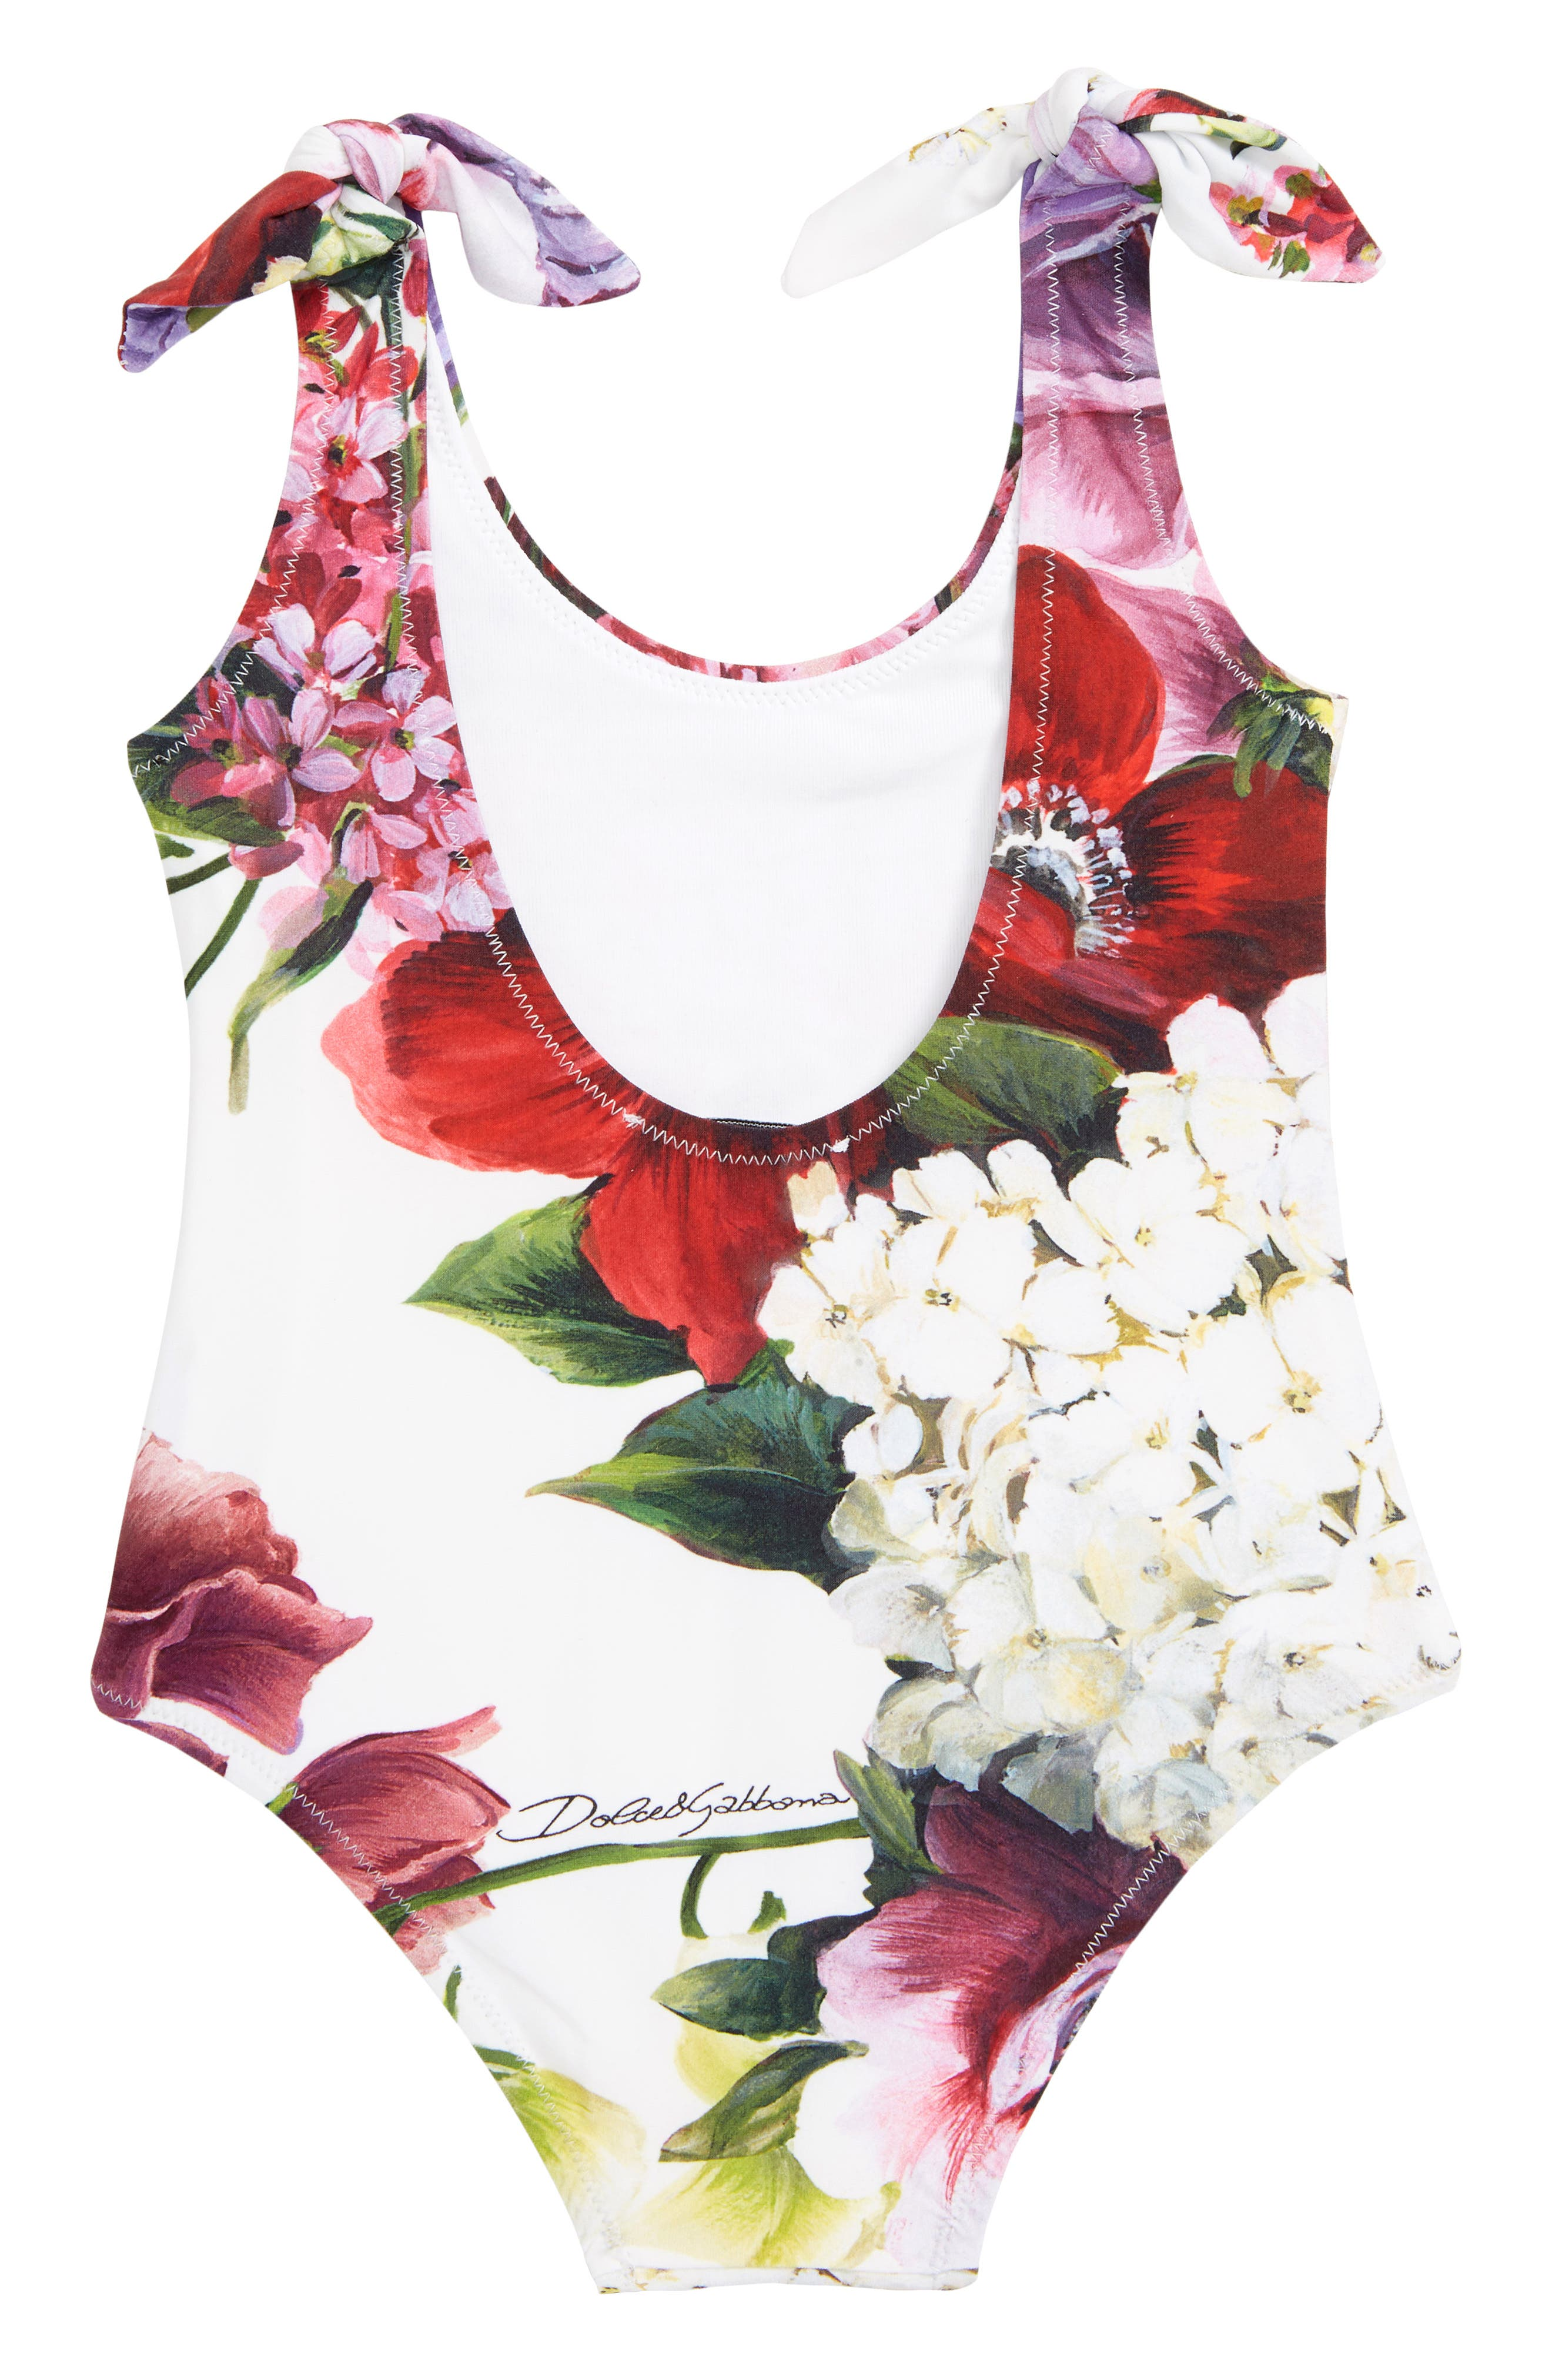 DOLCE&GABBANA, Intero One-Piece Swimsuit, Alternate thumbnail 2, color, ORTENSIE/ FIORI F.NAT